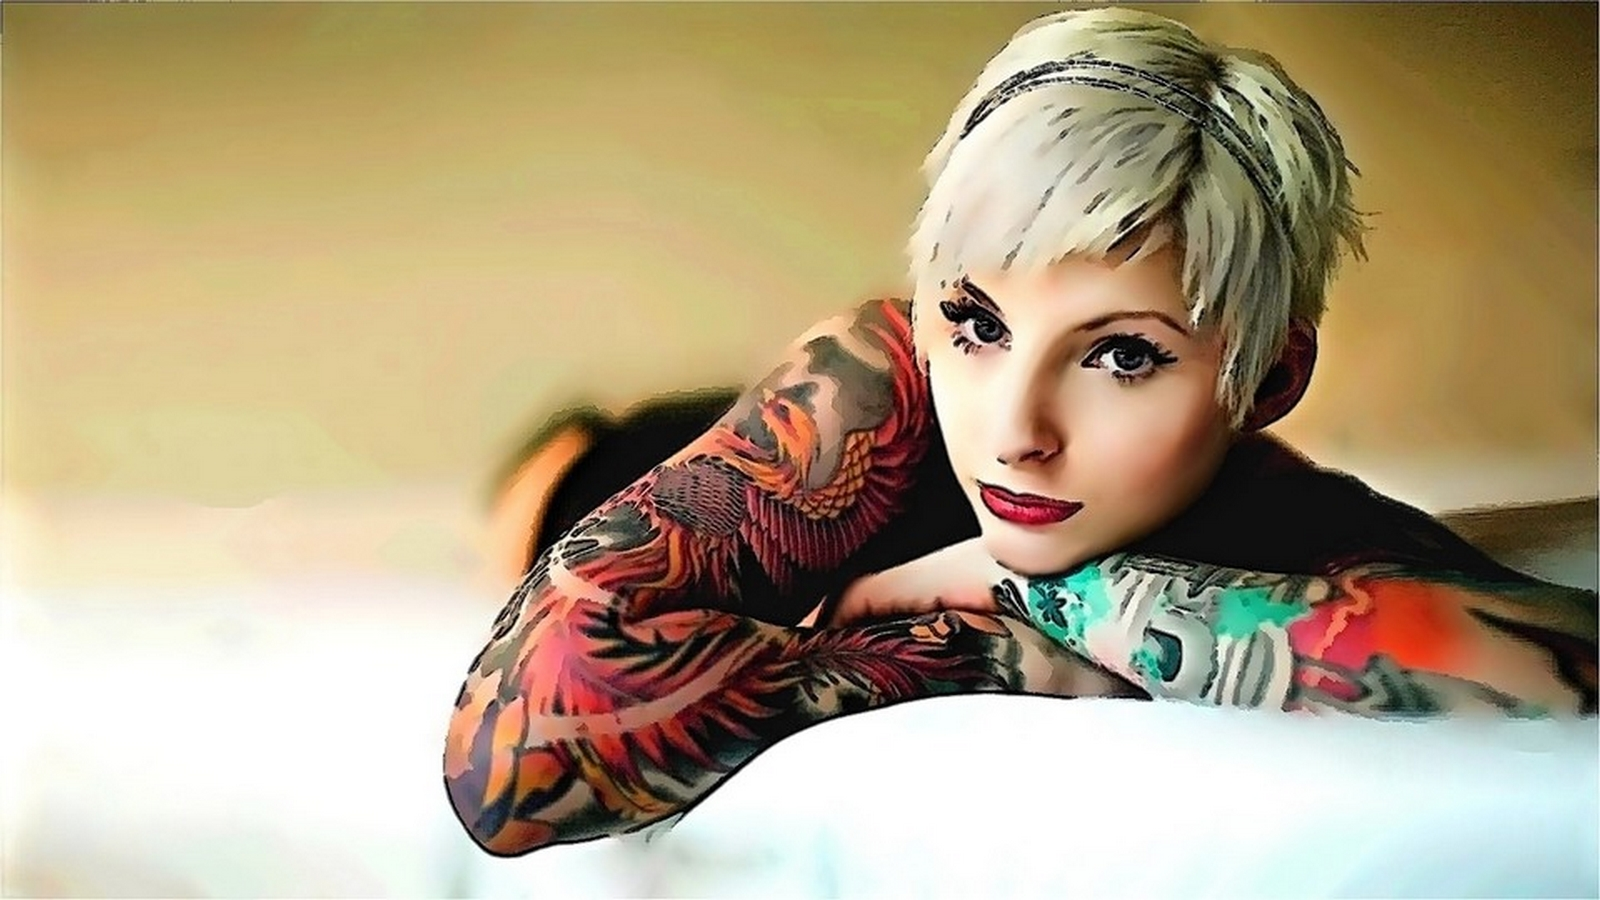 Beautiful Tattoo Wallpaper